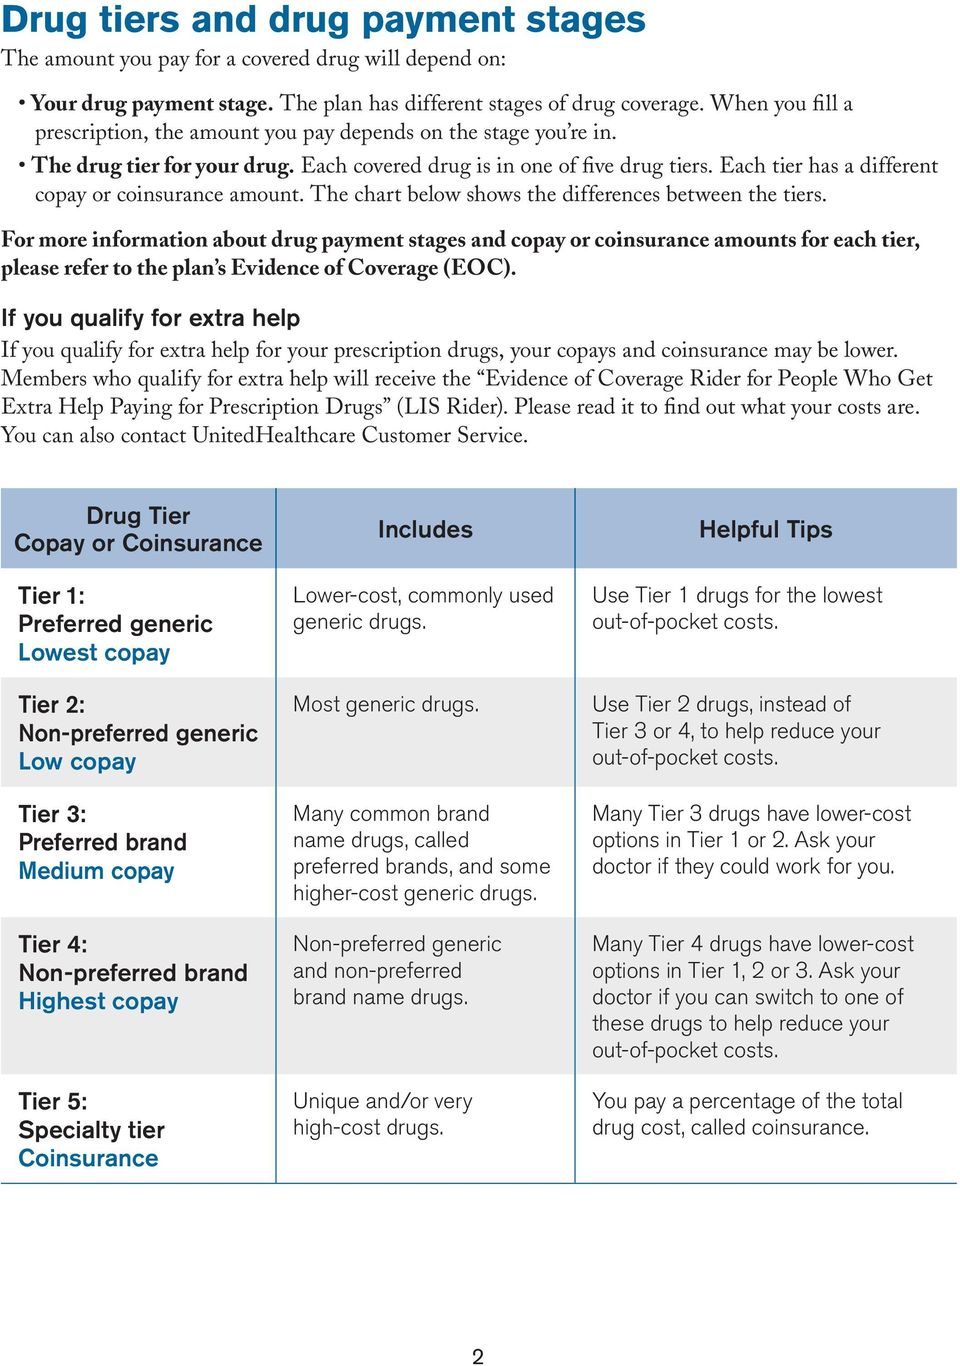 Each tier has a different copay or coinsurance amount. The chart below shows the differences between the tiers.